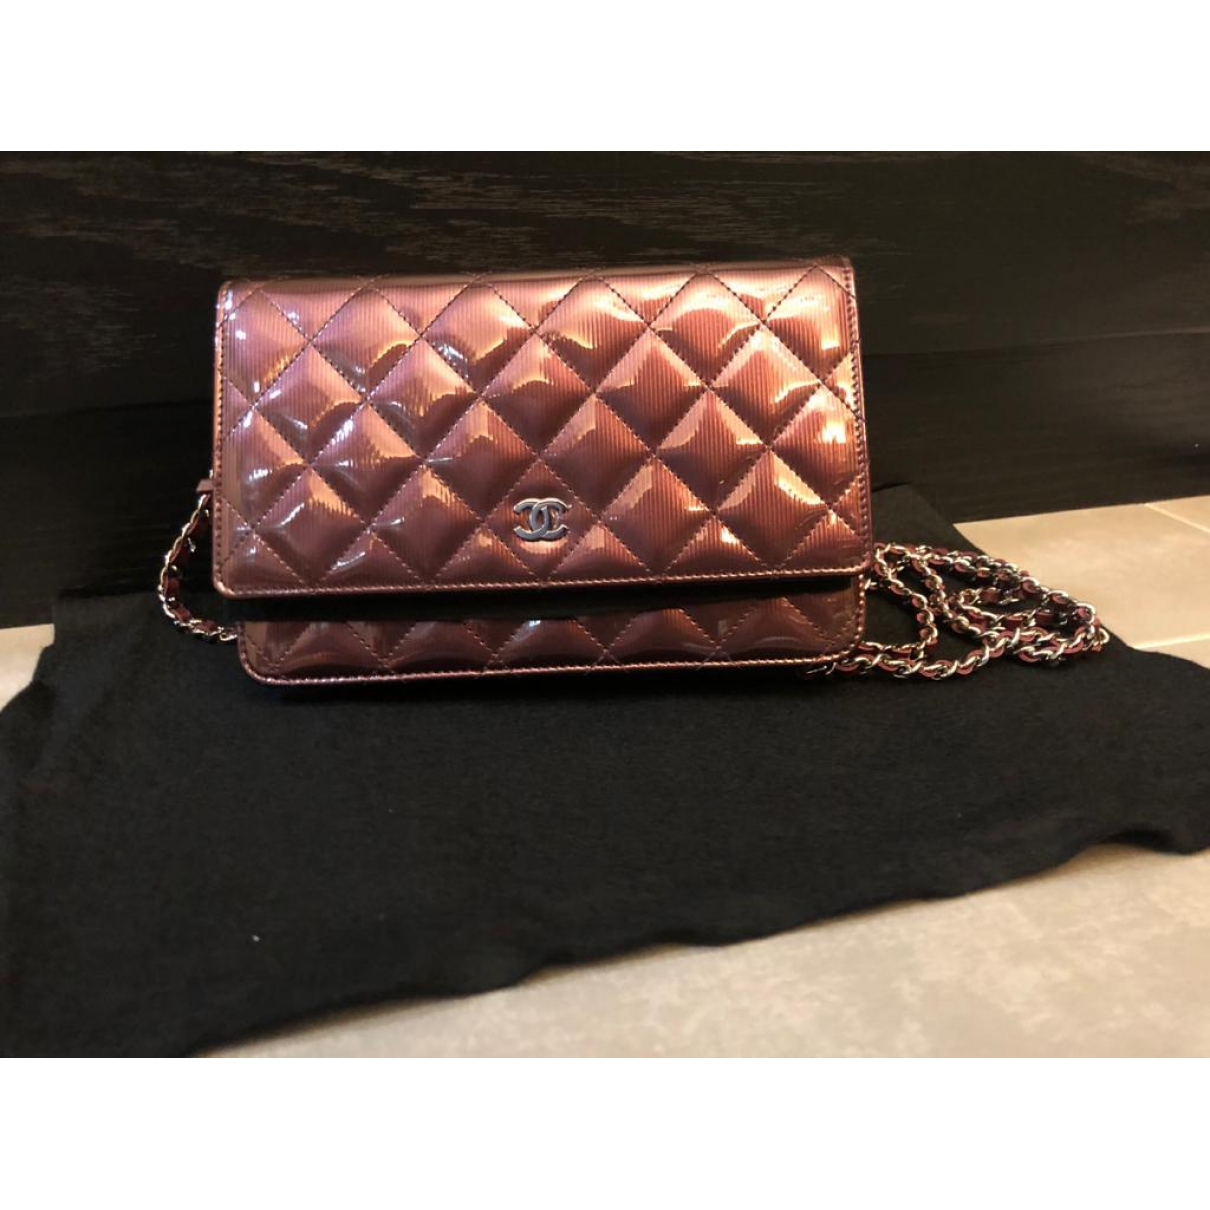 Chanel Wallet on Chain Burgundy Patent leather handbag for Women \N